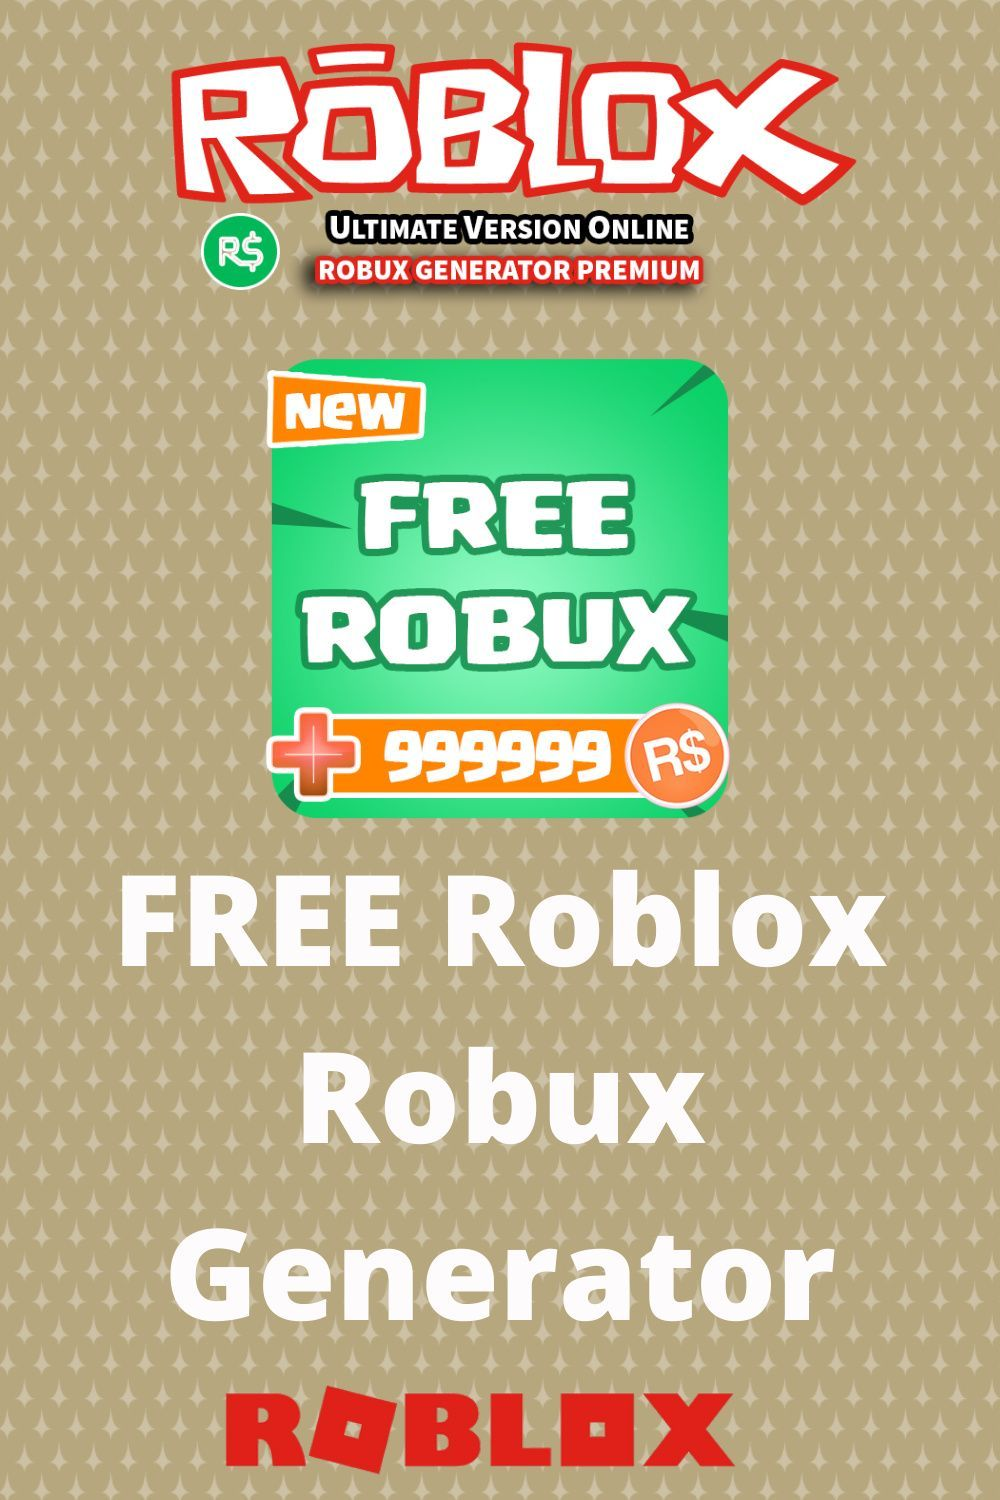 Free robux generator ios android pc in 2020 roblox